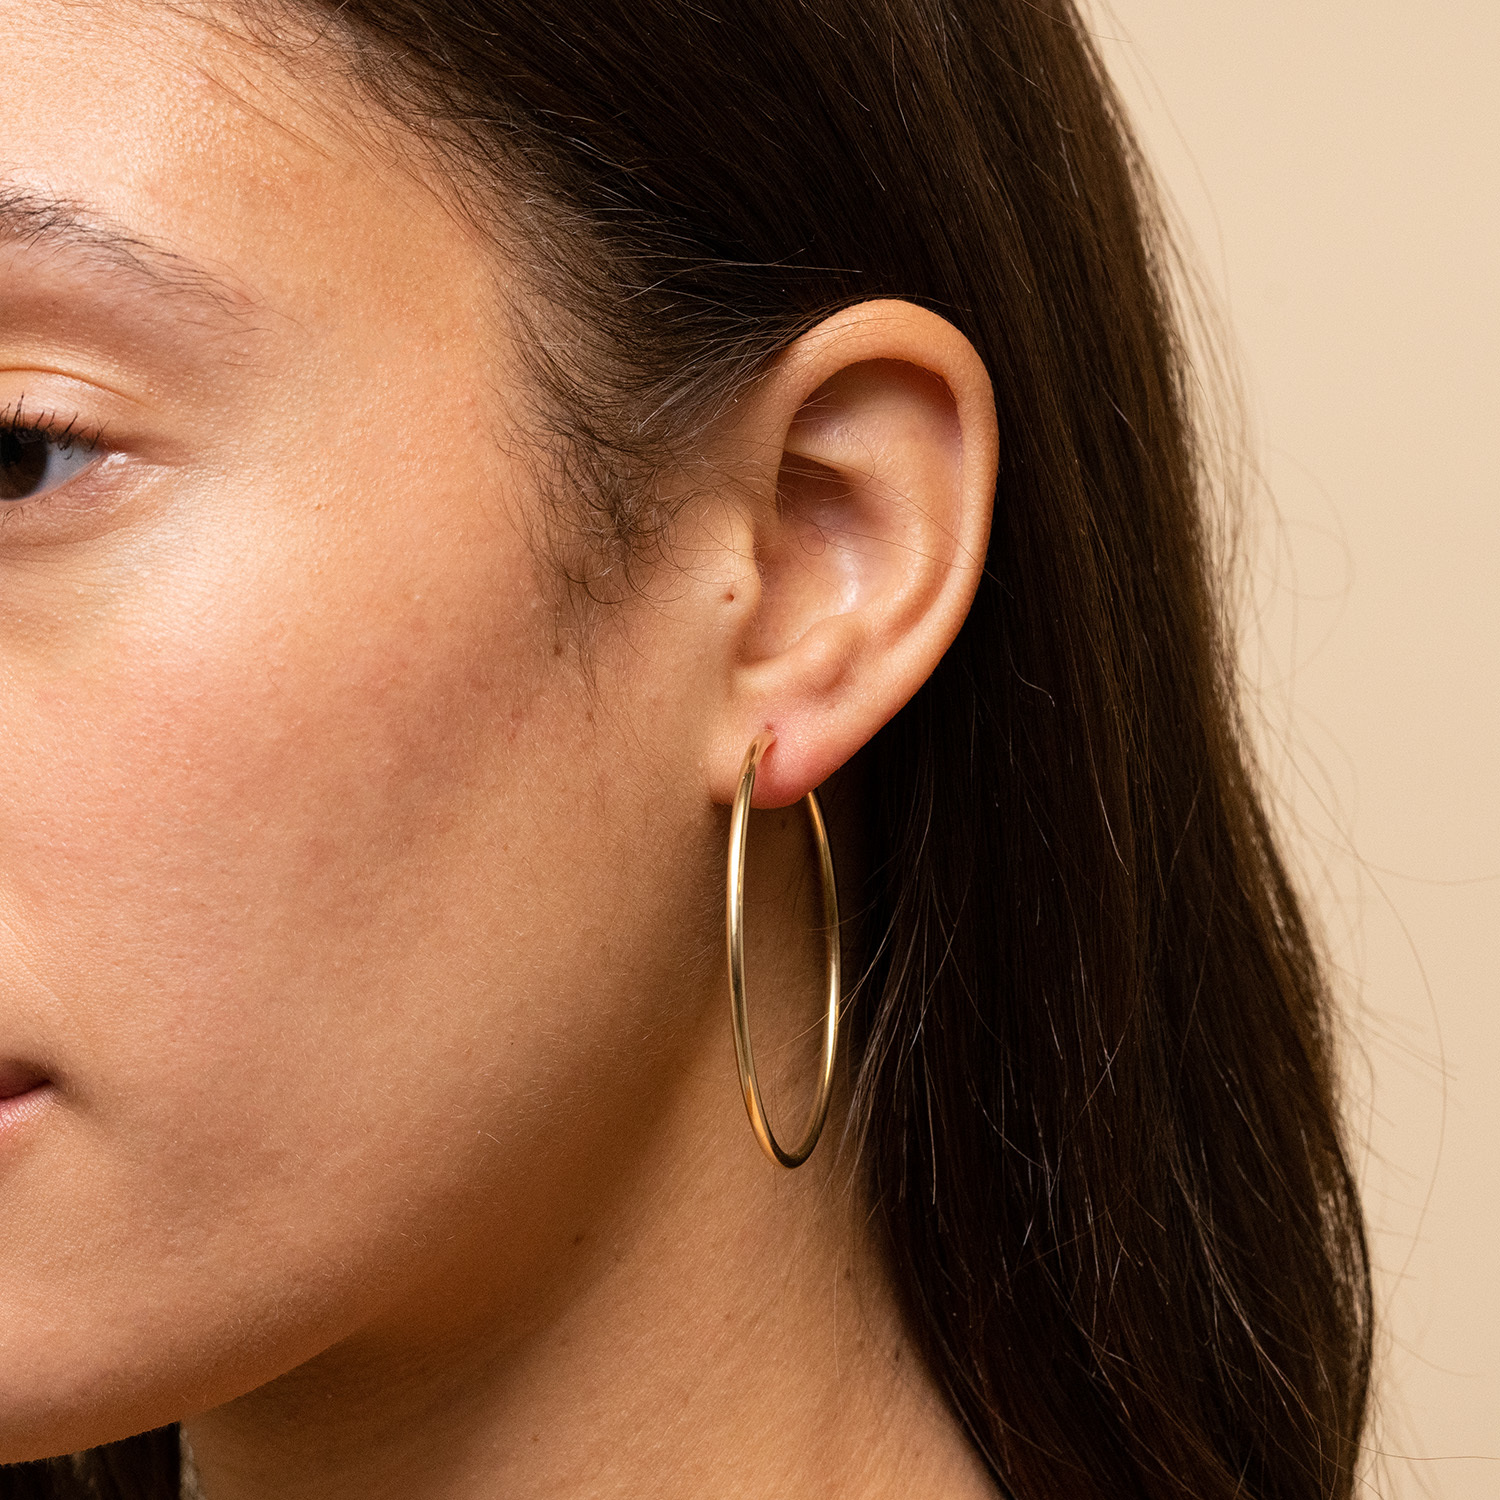 Mejuri hoop earrings